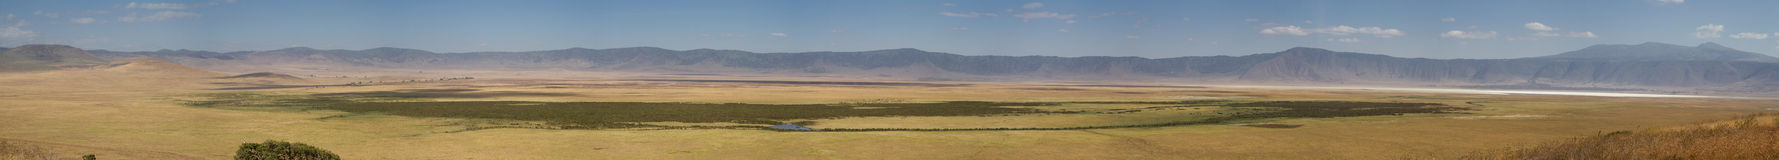 Panorama of the Ngorongoro crater Royalty Free Stock Images